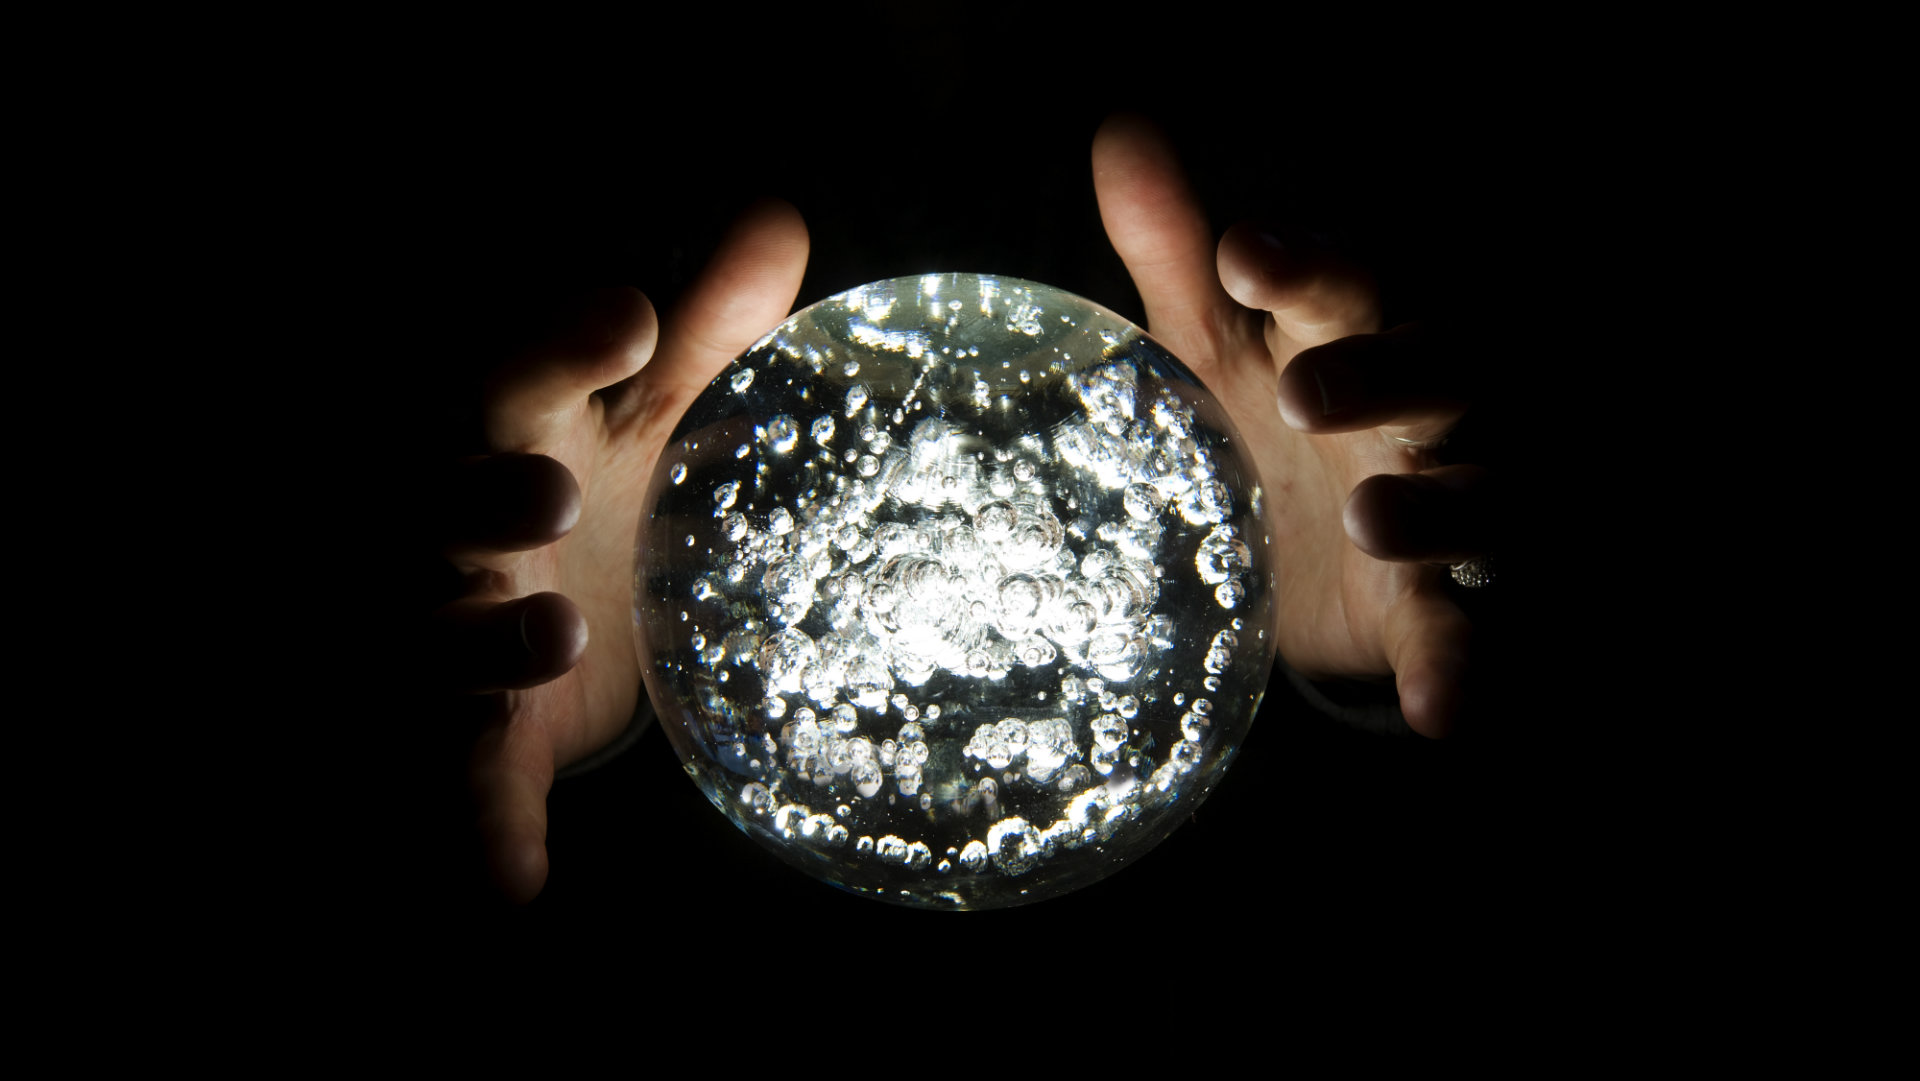 What does your marketing crystal ball reveal?